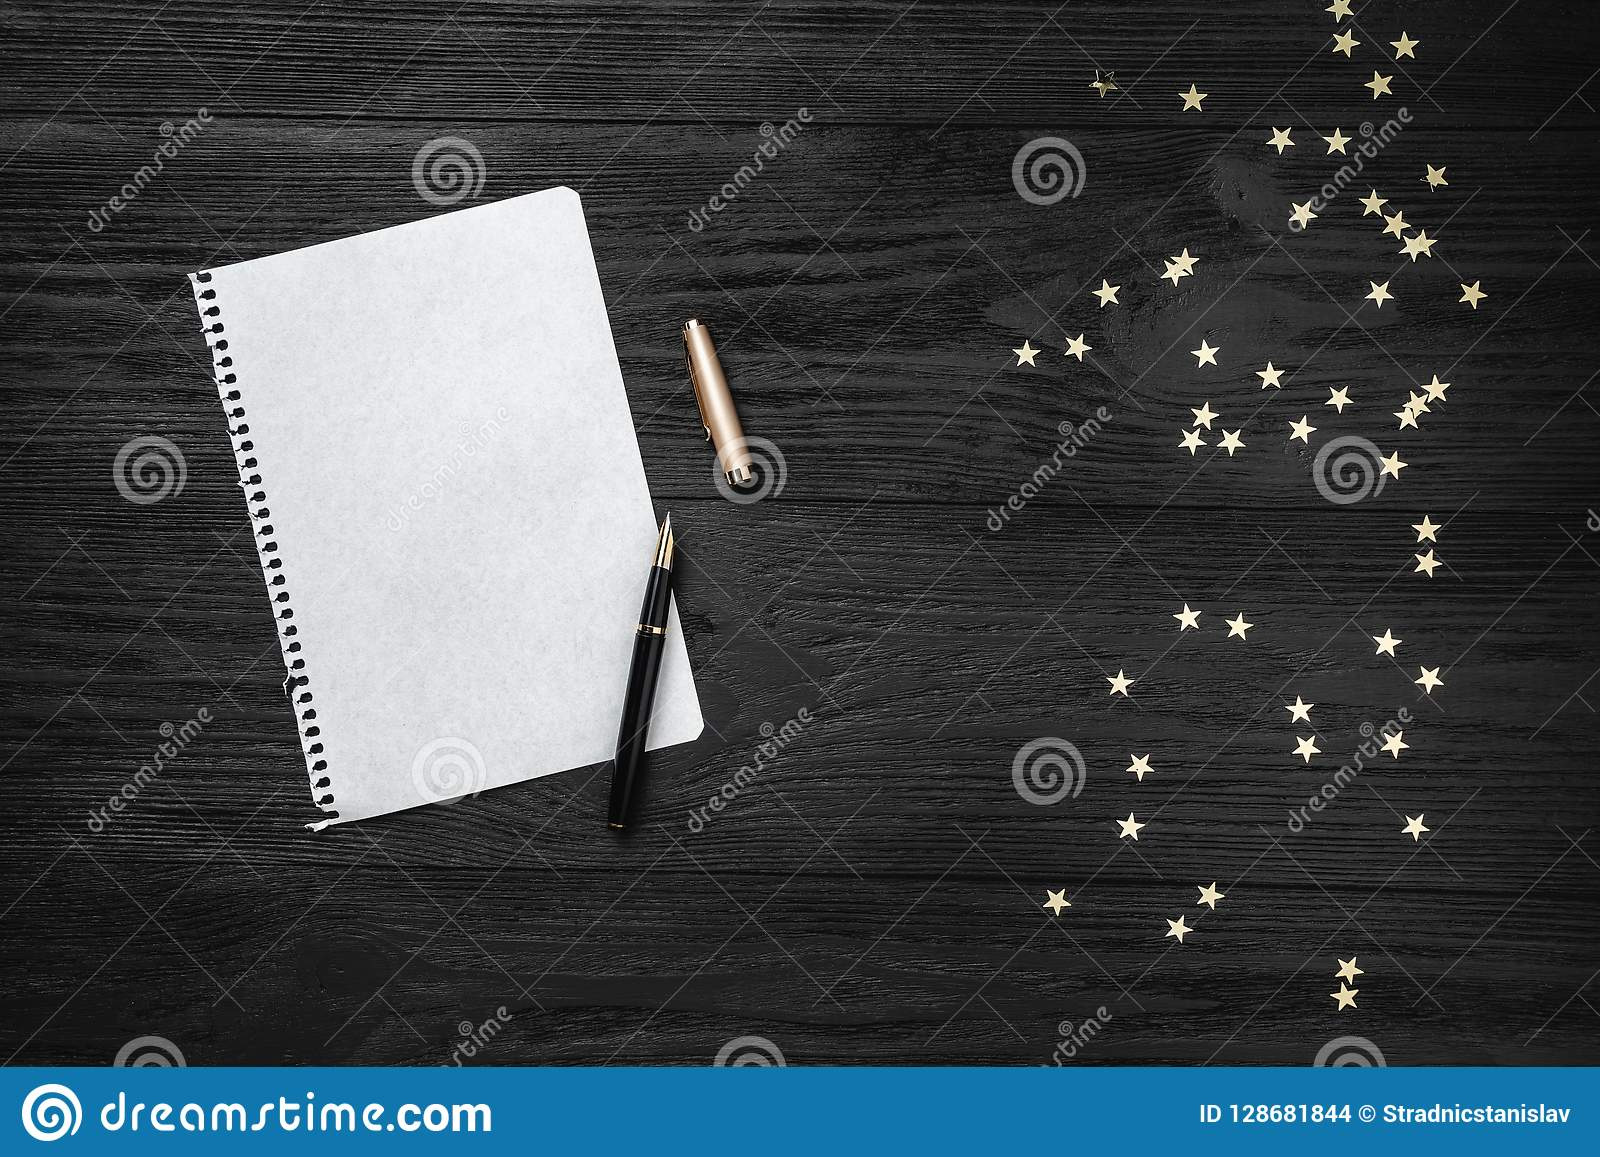 Wallpaper of winter holidays on black background. Letter for Santa Claus. Space for text. Top view